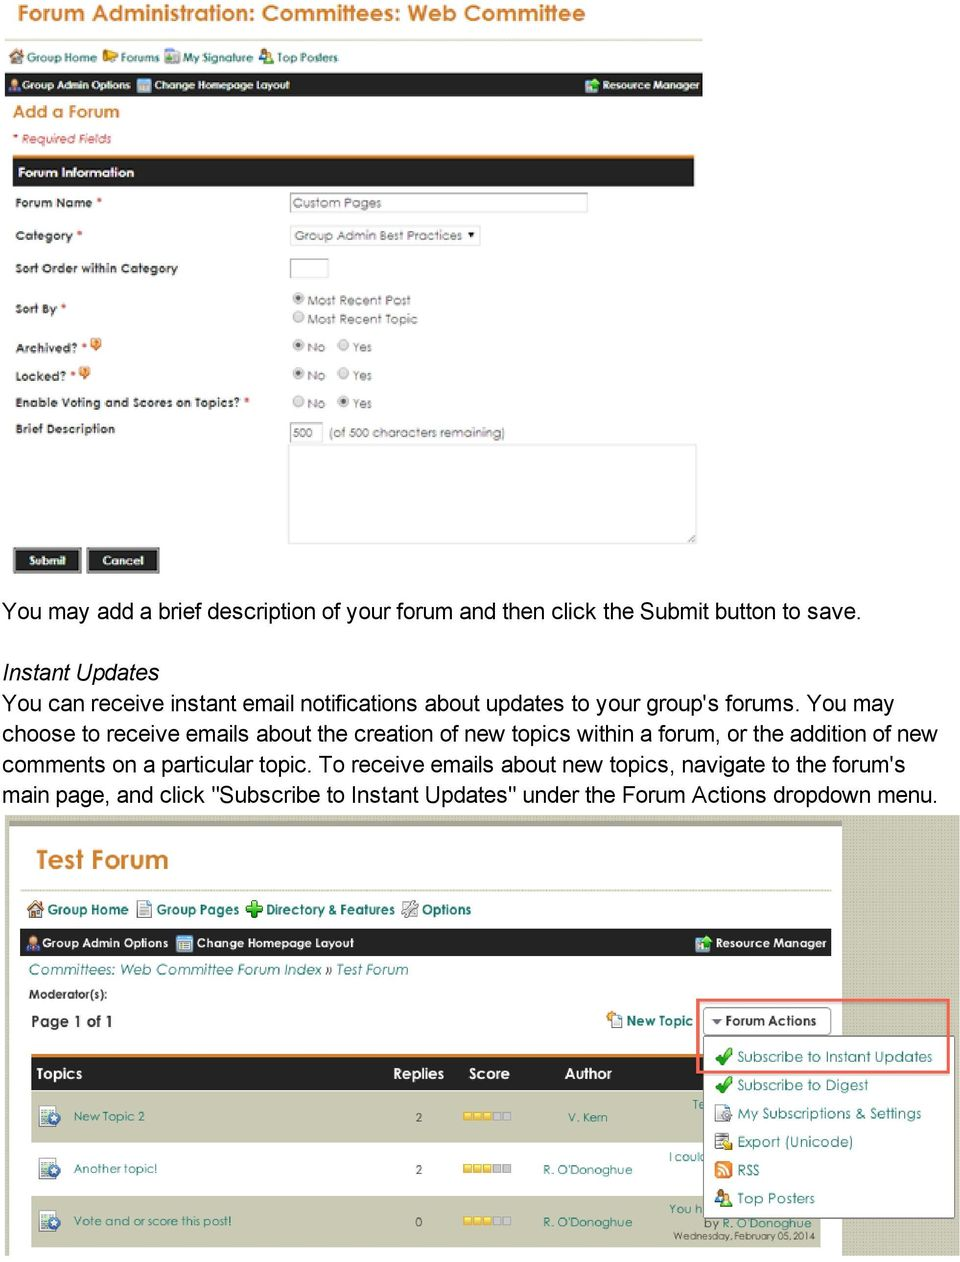 You may choose to receive emails about the creation of new topics within a forum, or the addition of new comments on a